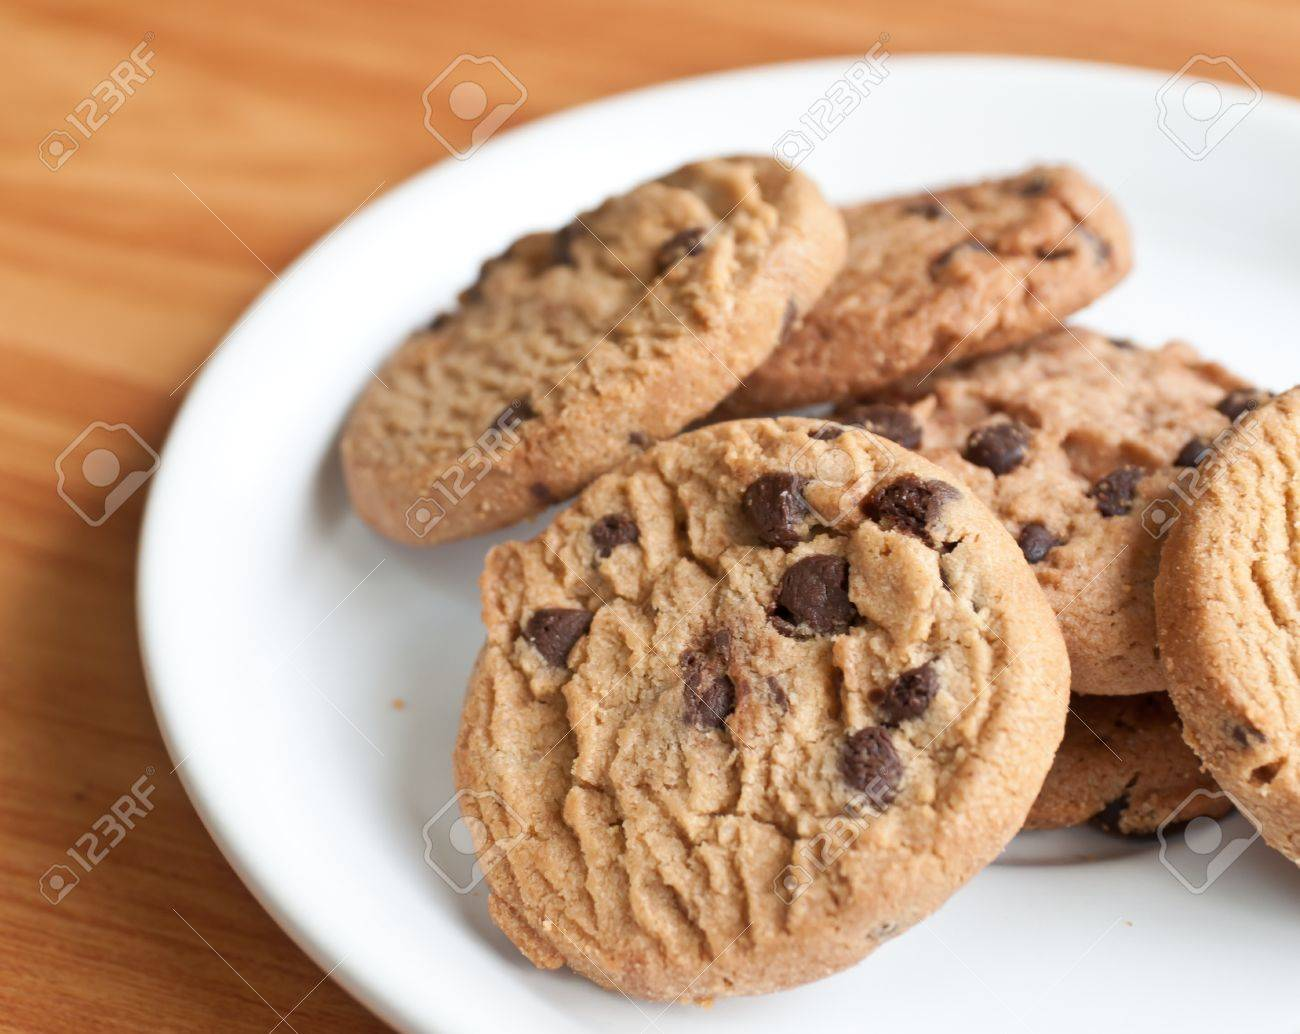 chocolate chips cookies in a dish on the wood teble. - 13354136